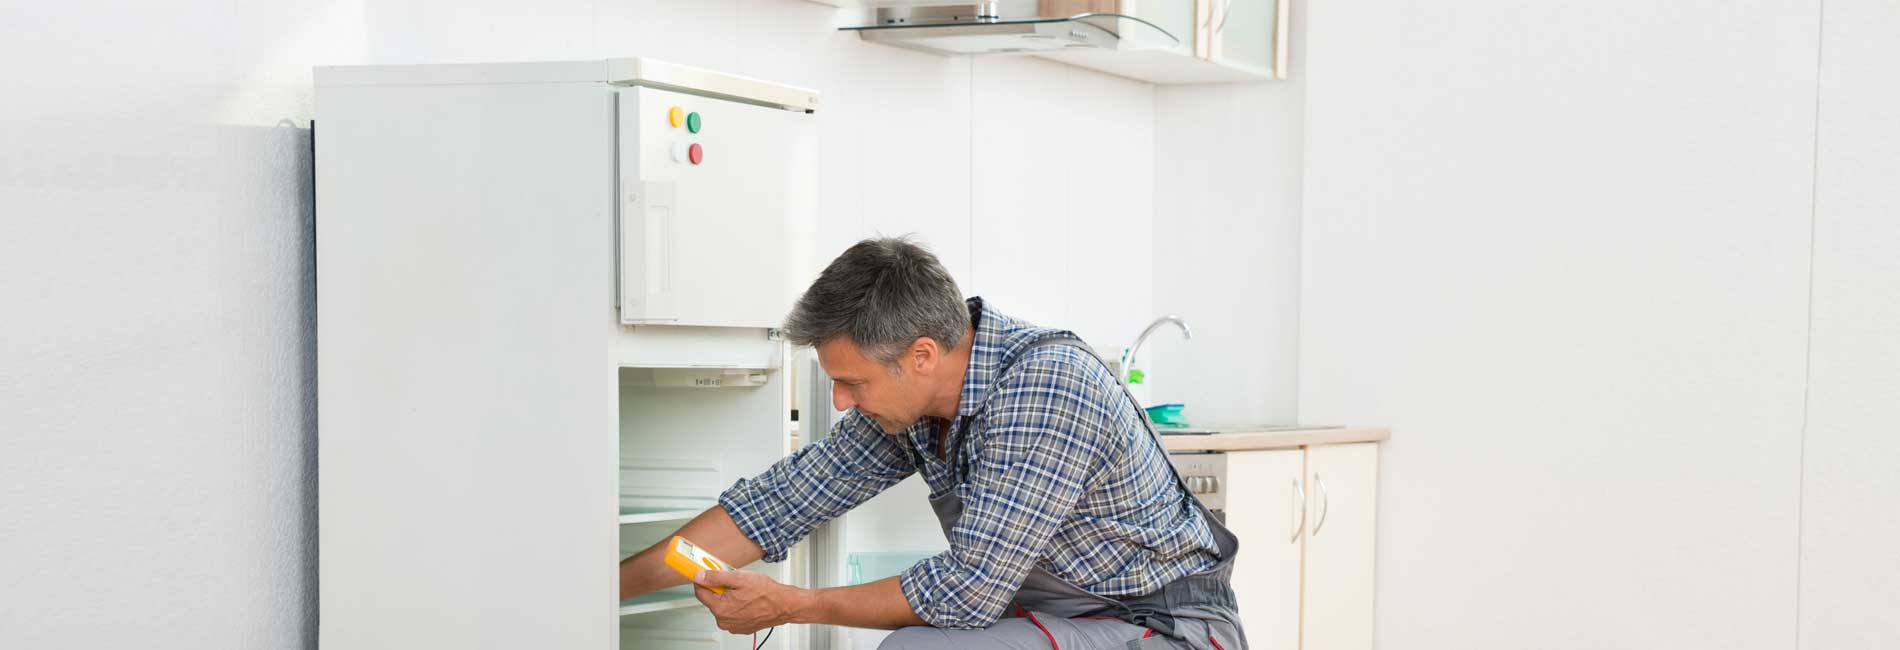 Whirlpool Fridge Repair in Vallalar Nagar